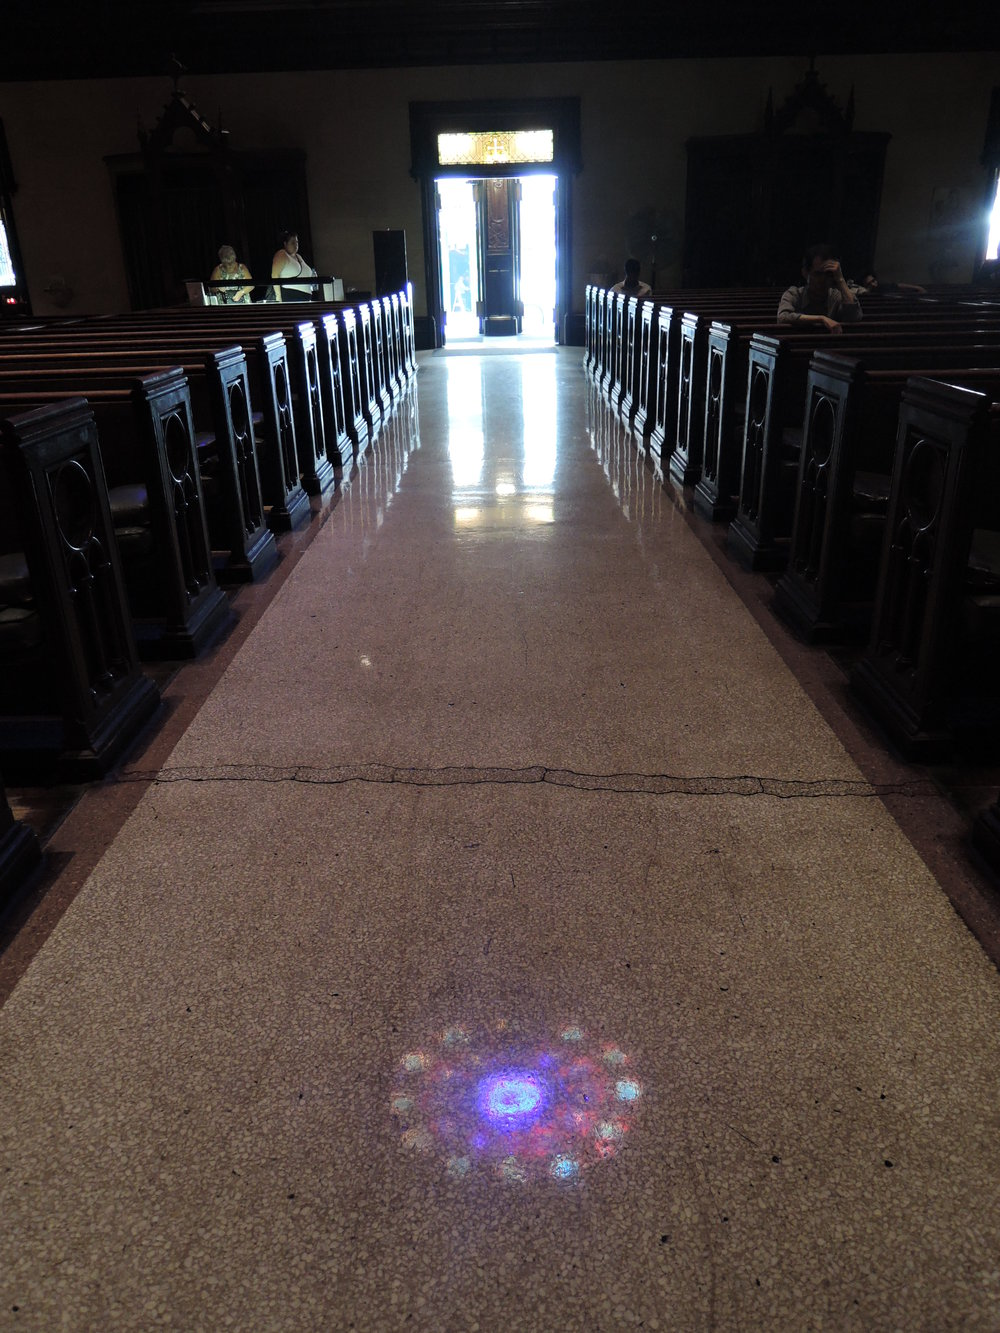 A reflection of the rose window on the floor of the main aisle of the church